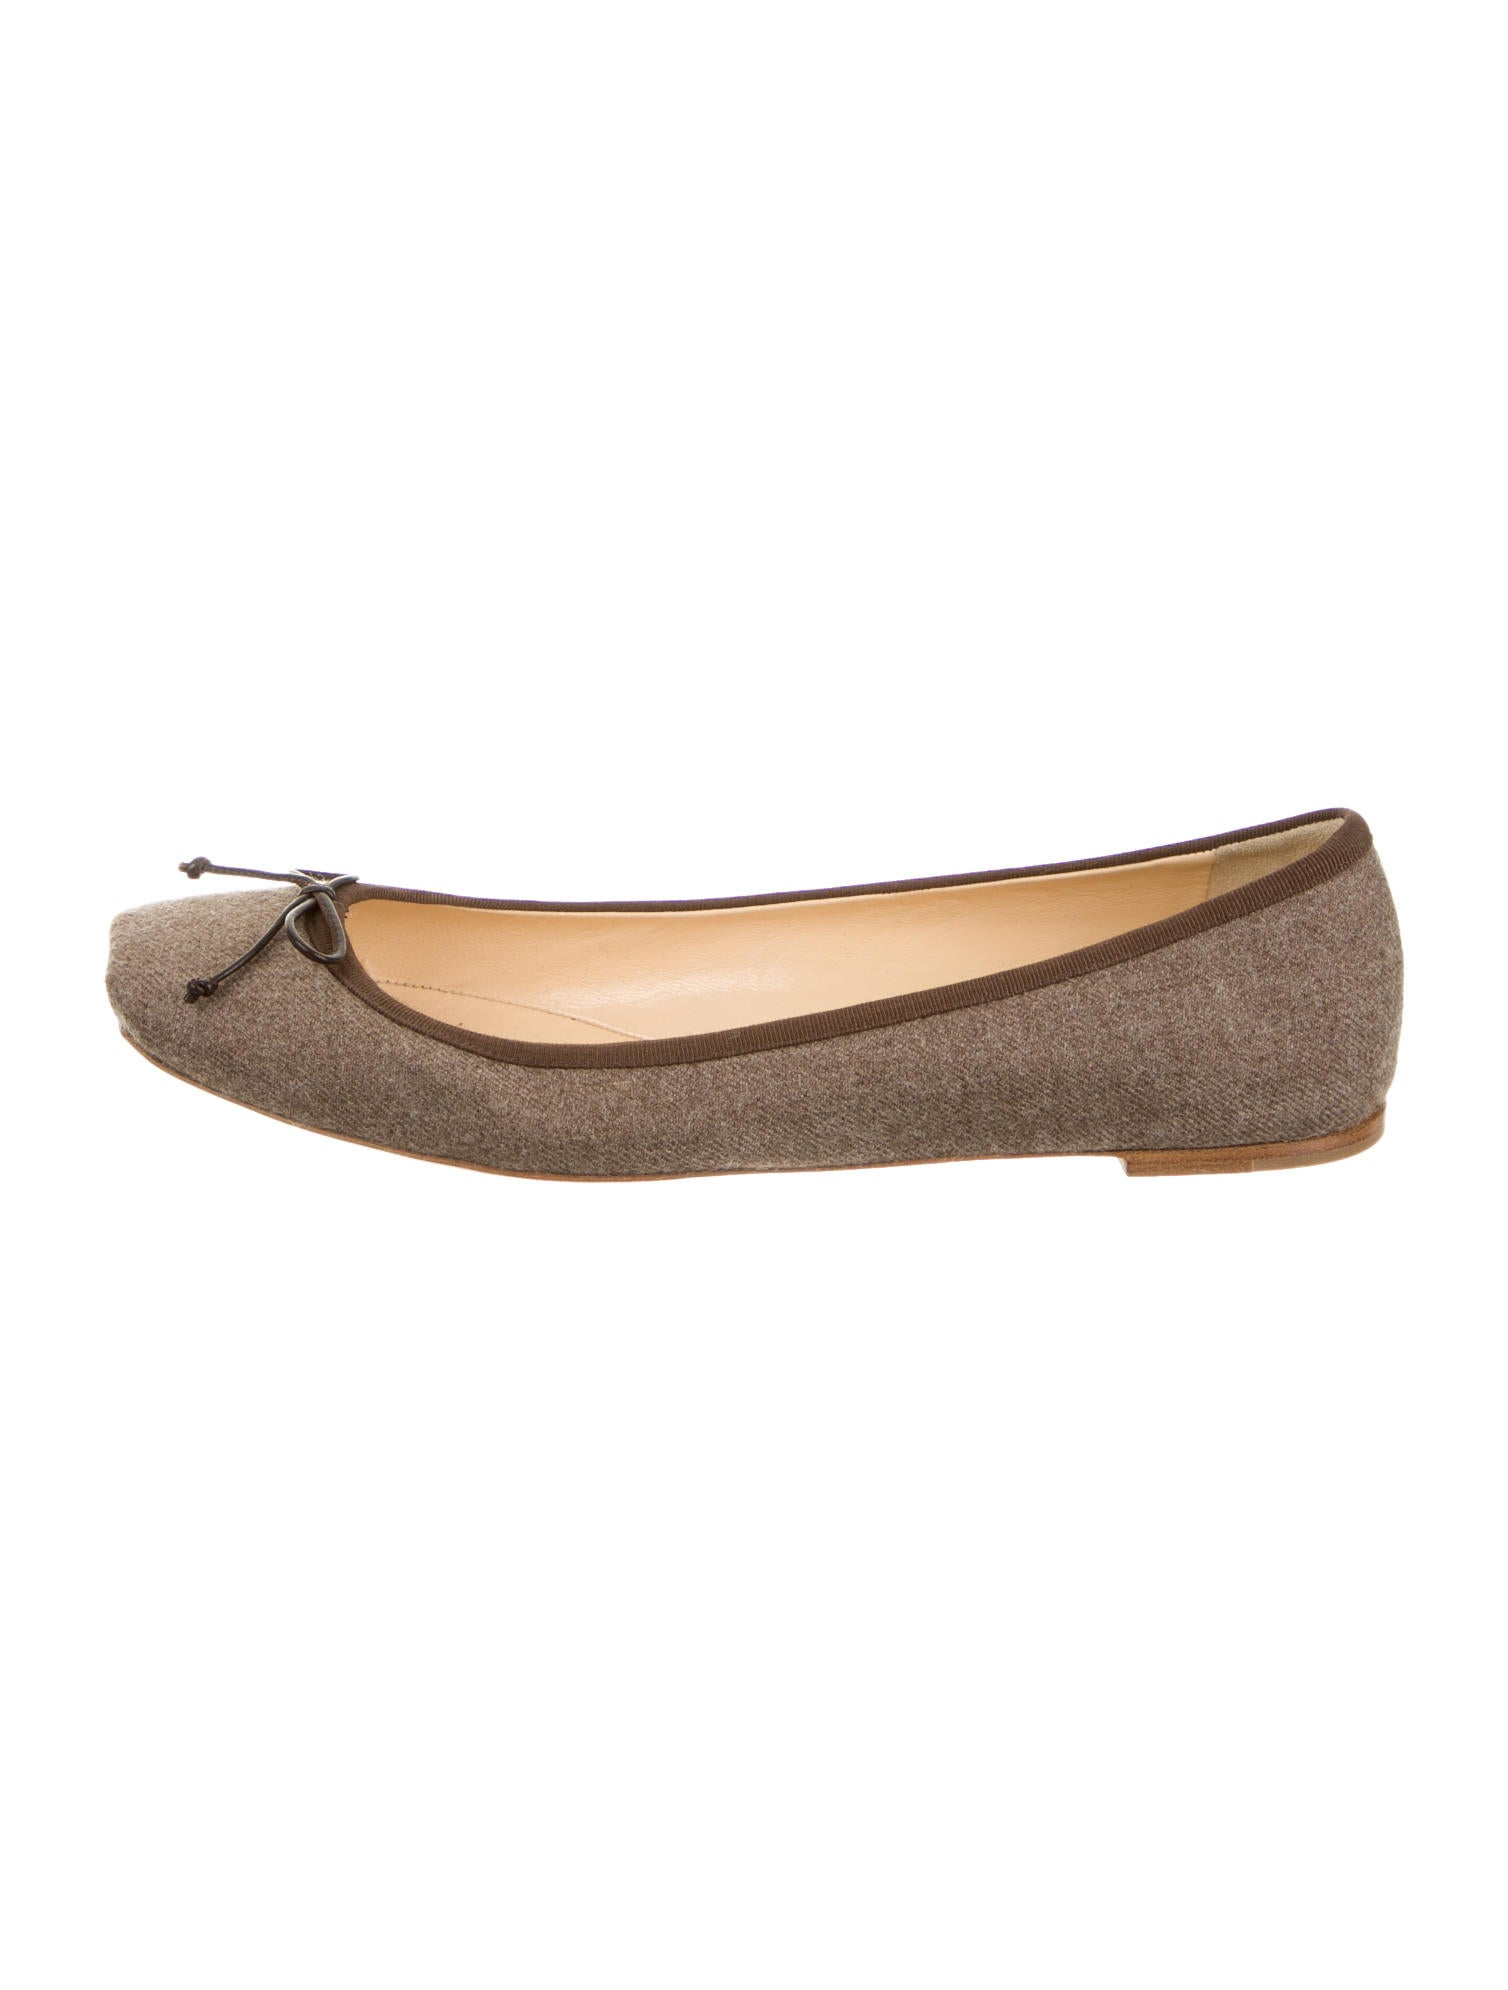 christian louboutin square-toe flats Brown wool bow accent | The ...